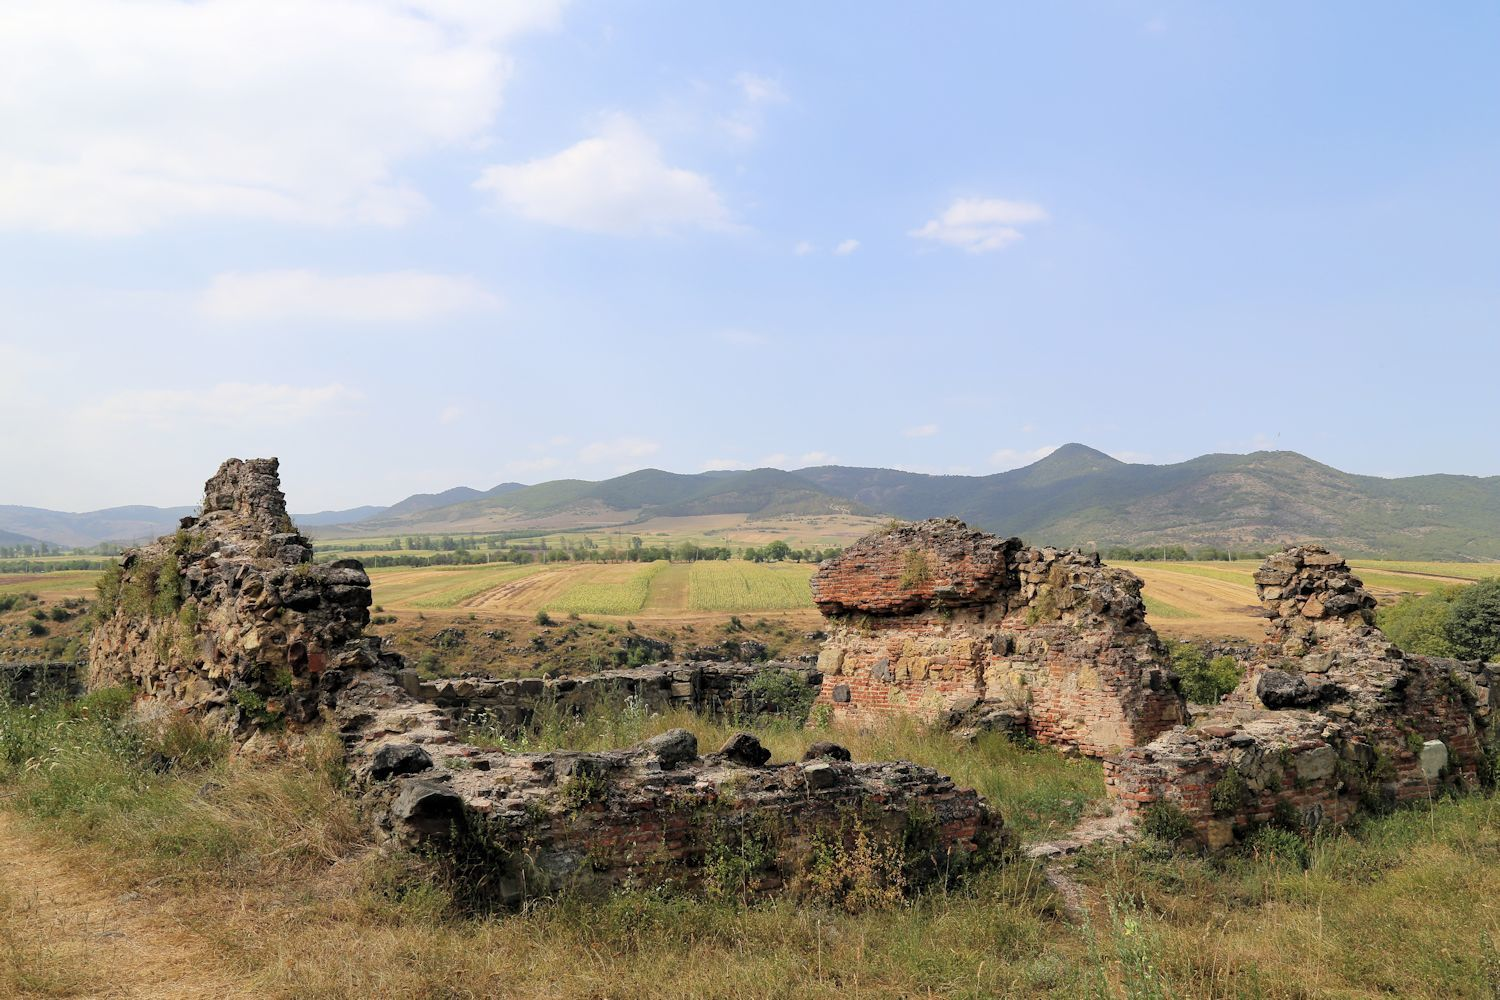 Medieval remains in Dmanisi Maseun - Reserve